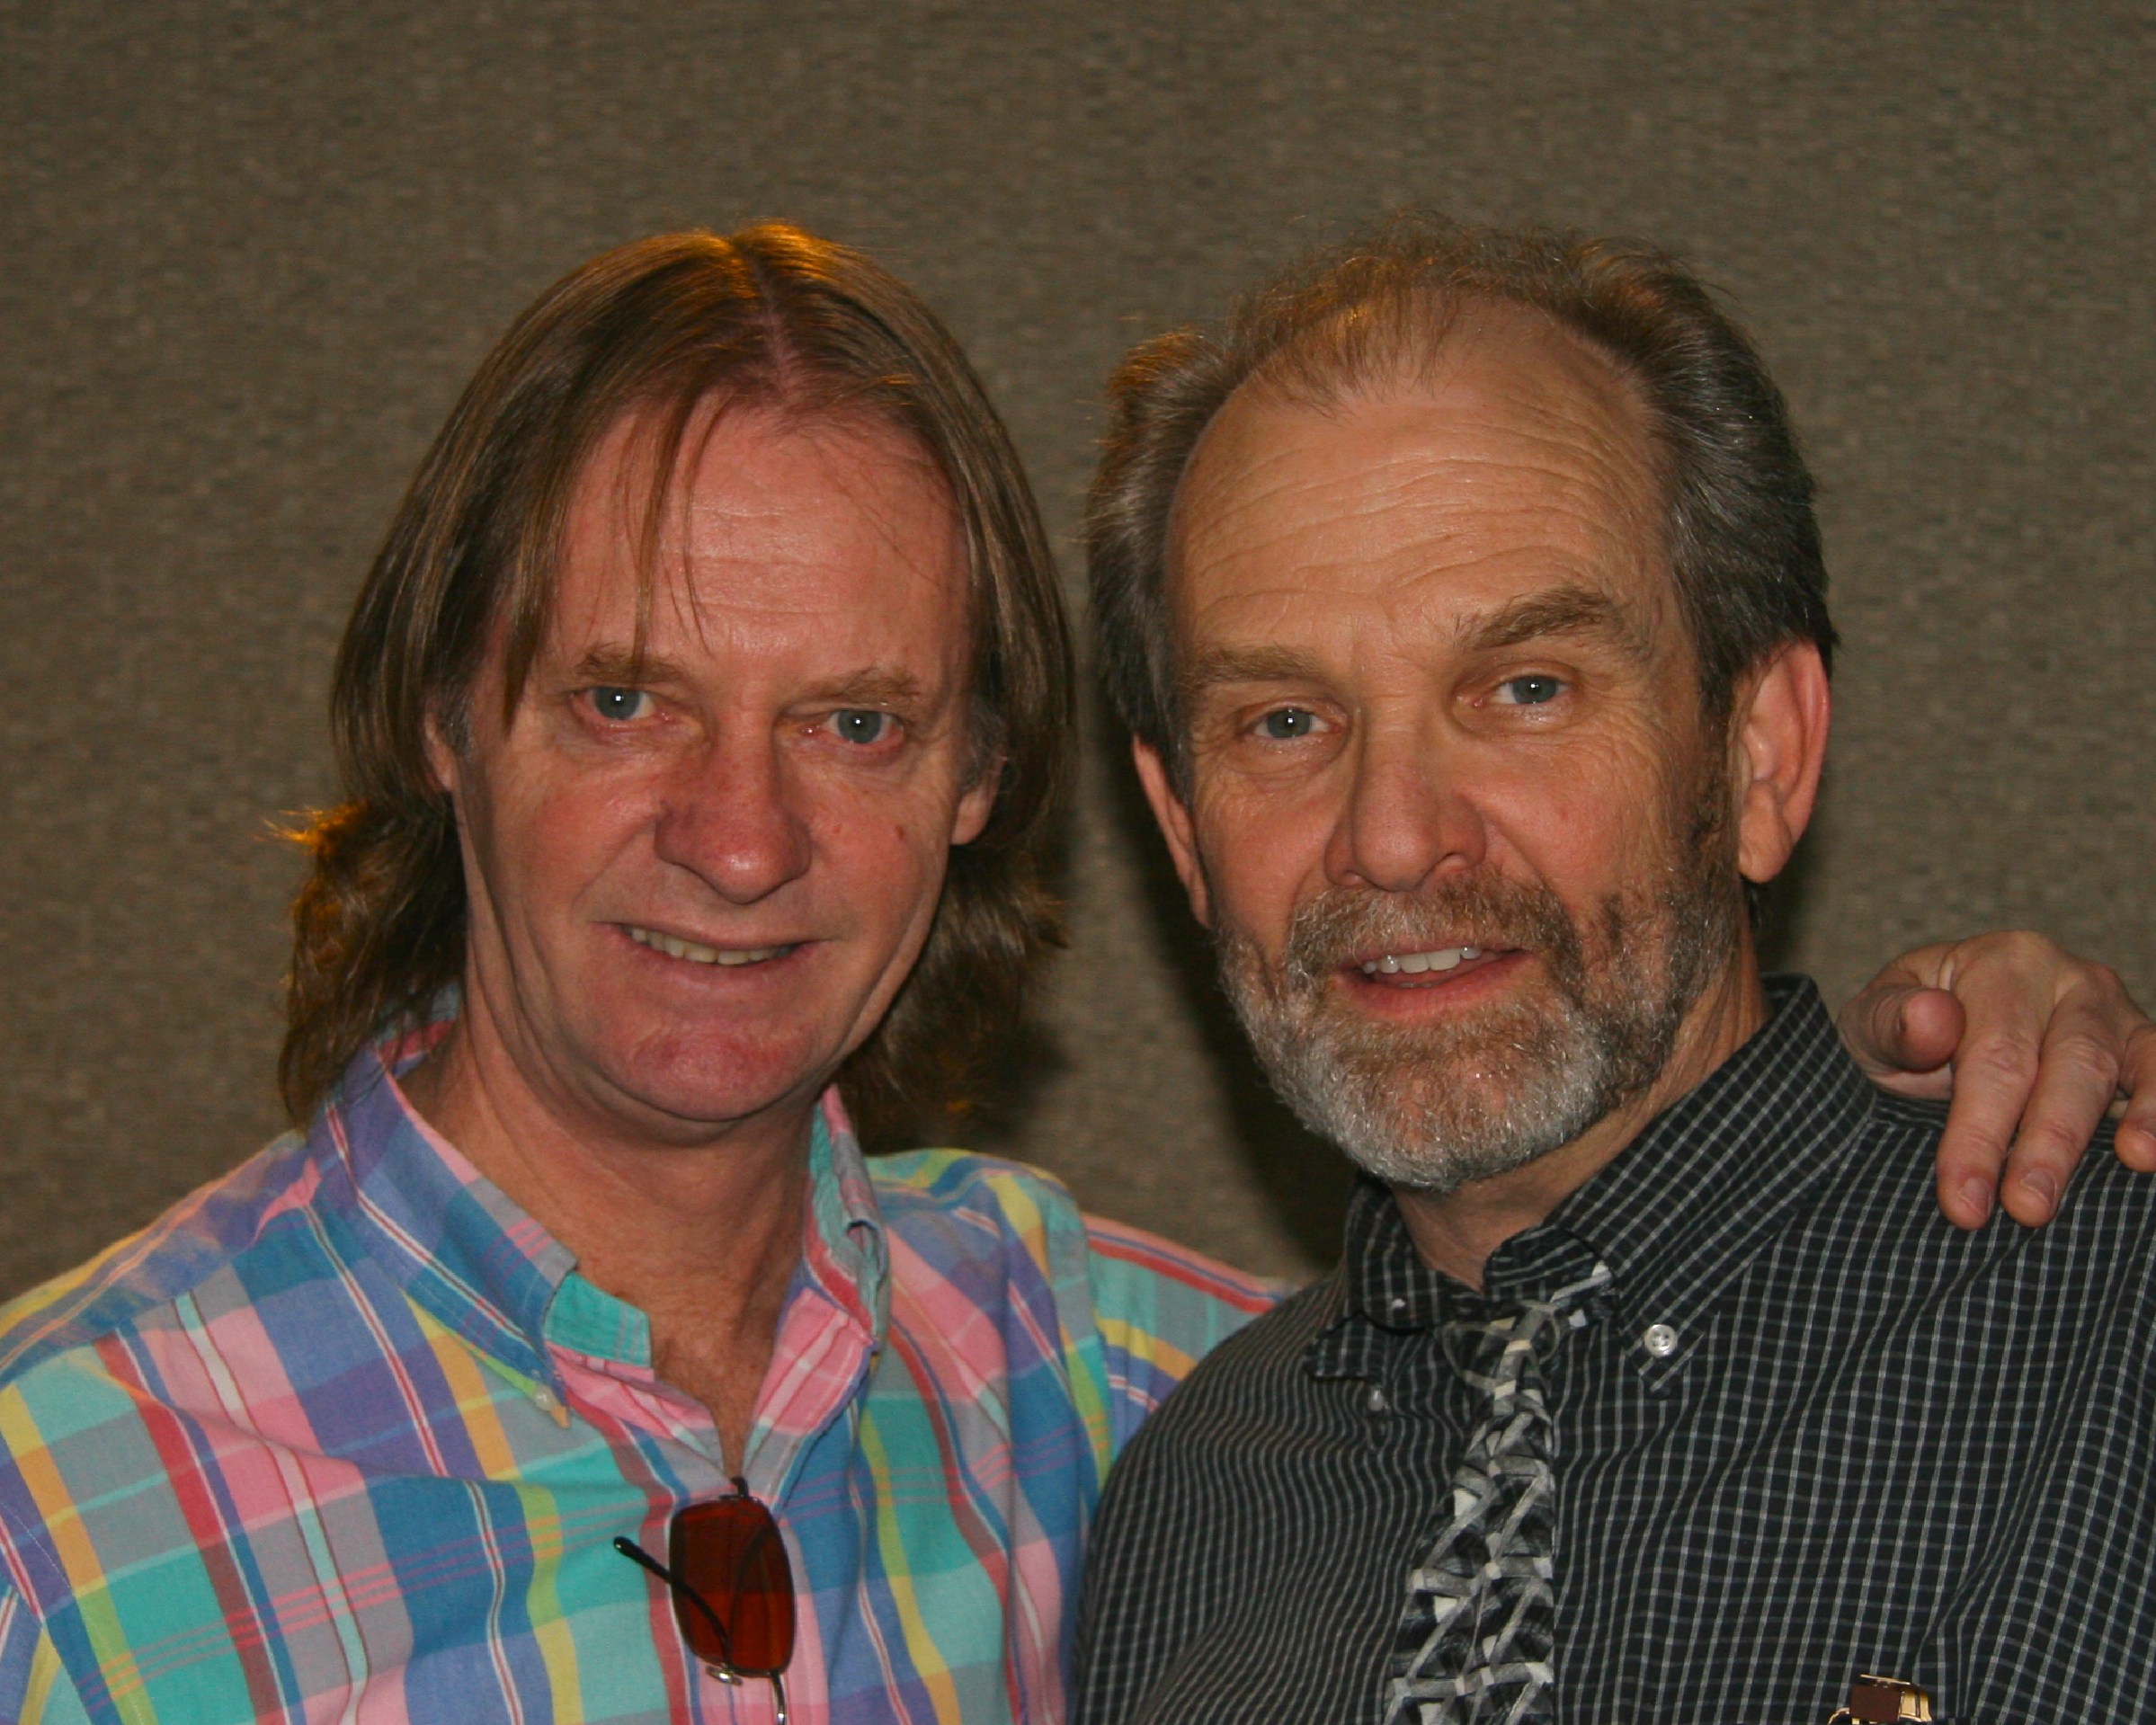 David Russell and Sterling Beeaff, photo credit M.Rodriguez